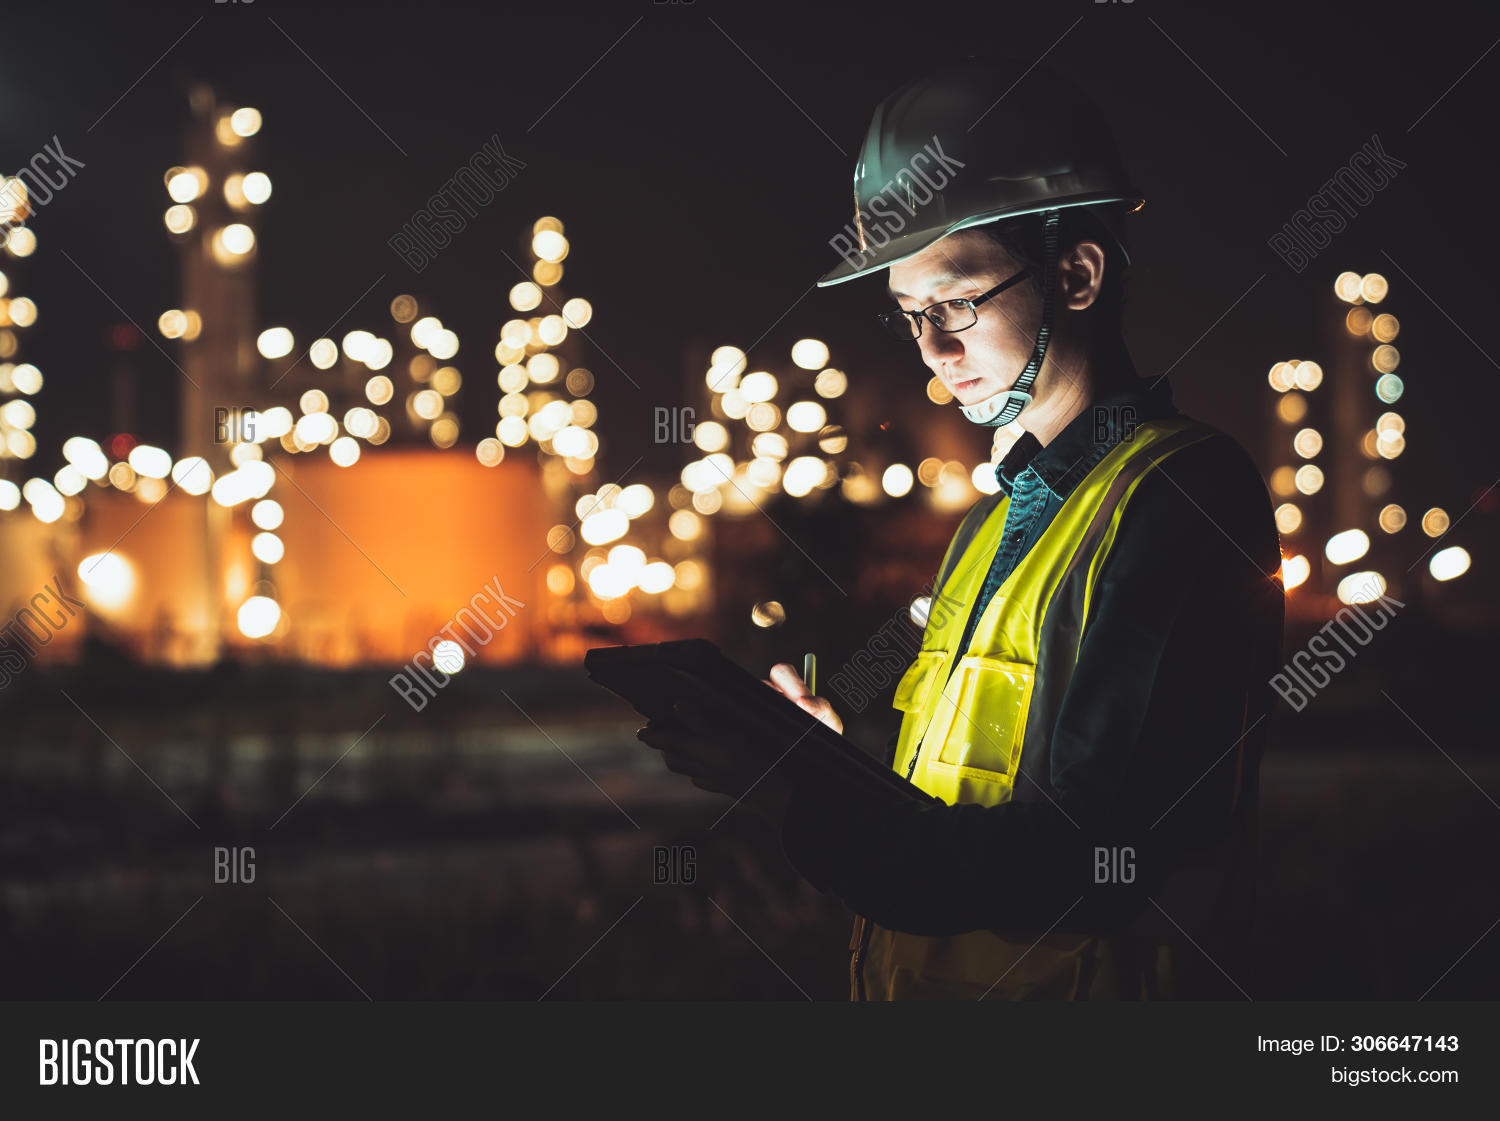 Asia,Asian,advanced,business,chemical,civil,computer,construction,development,digital,electrical,electrician,energy,engineer,engineering,estate,facility,factory,fuel,helmet,industrial,industry,job,late,light,maintenance,male,man,manufacturing,mechanical,night,oil,operation,people,petrochemical,plant,power,production,project,refinery,resource,safety,shift,site,station,tablet,technician,technology,work,worker